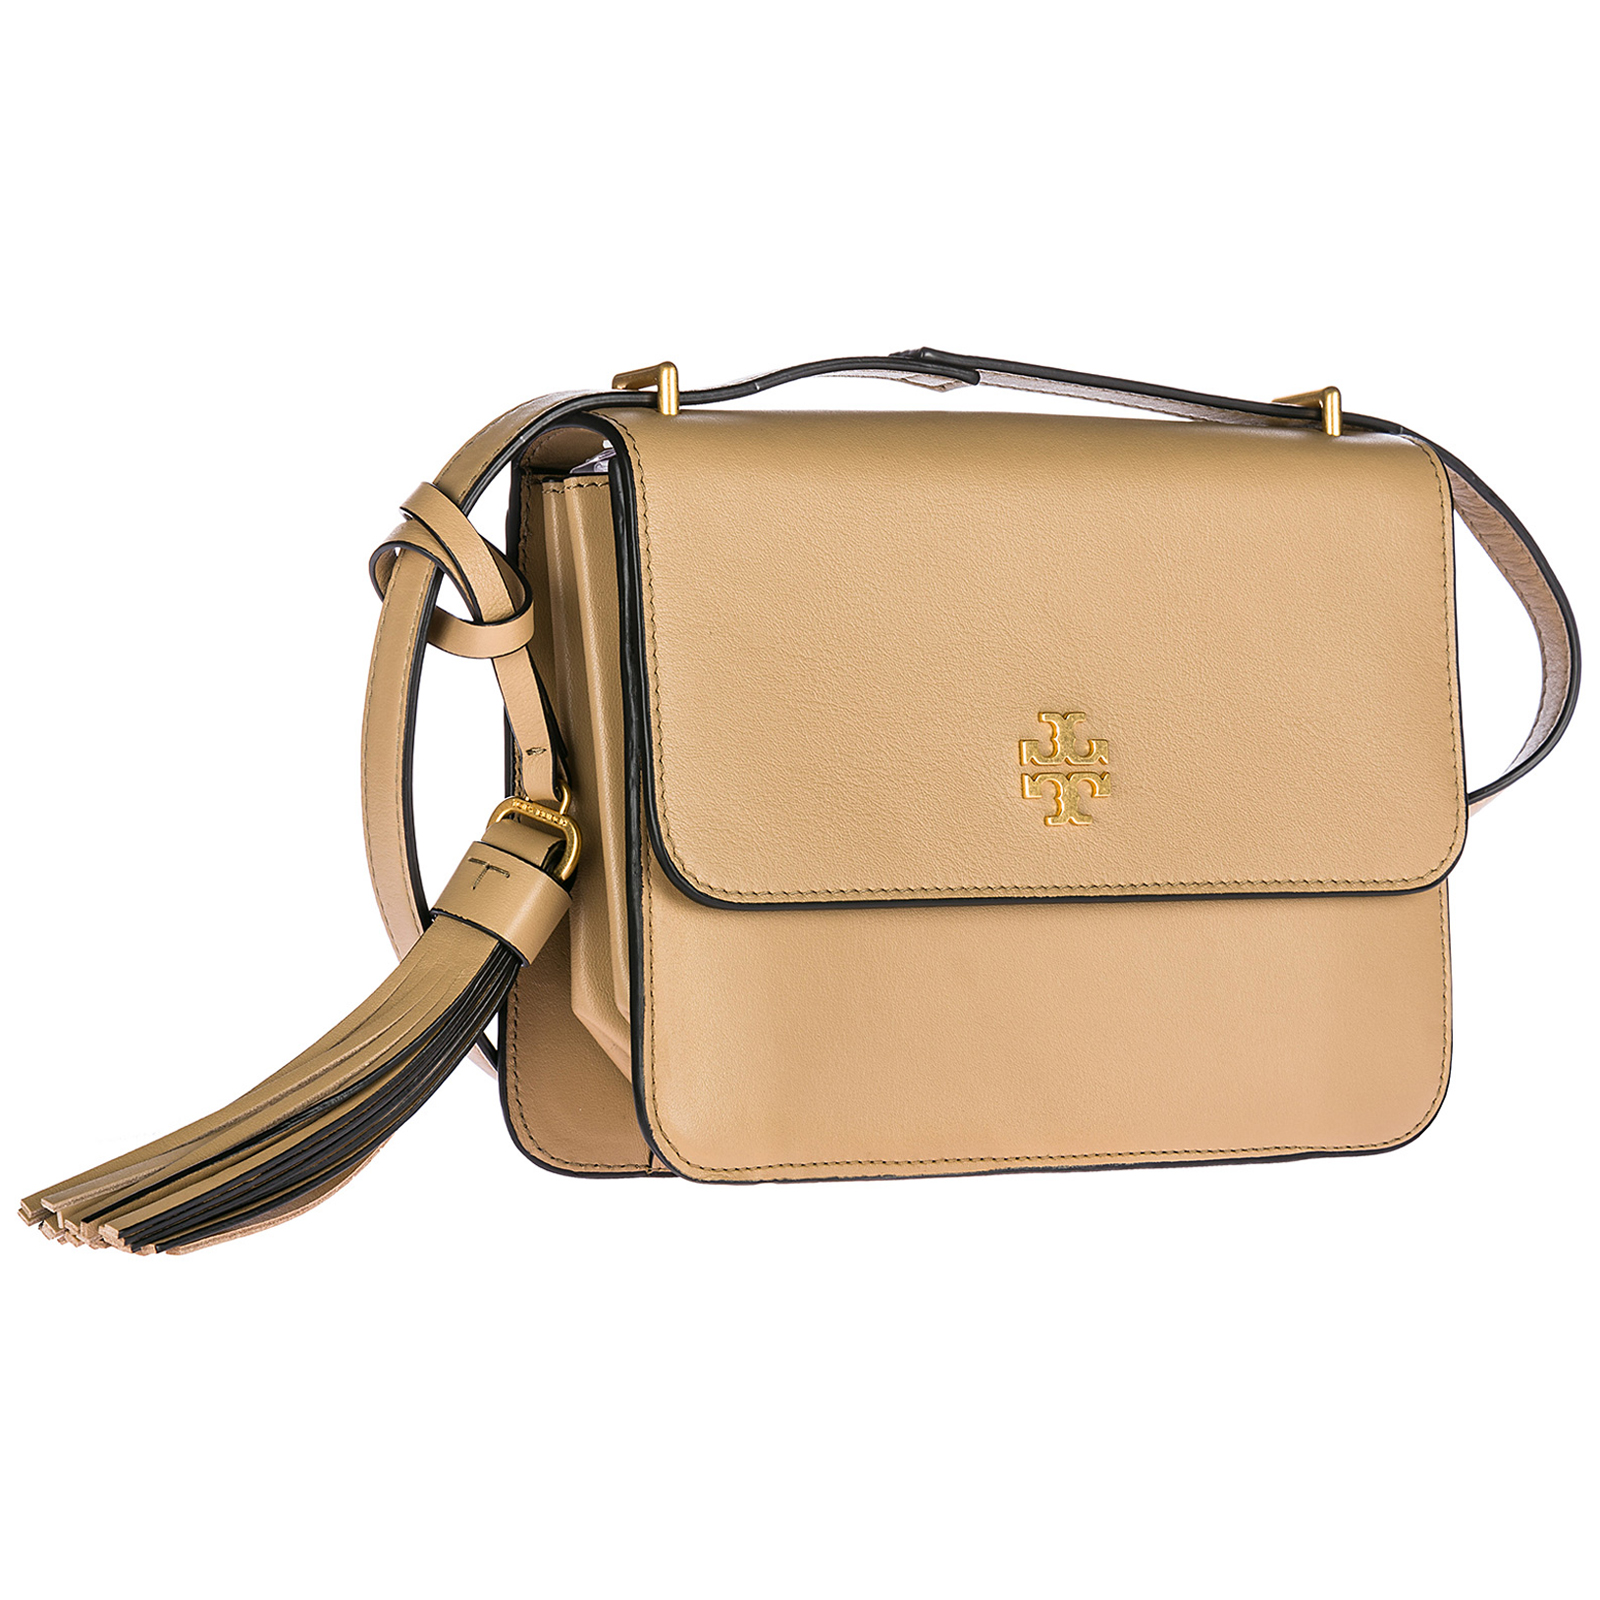 10ffca0ad4420 Shoulder bag Tory Burch Brooke 44778 savannah